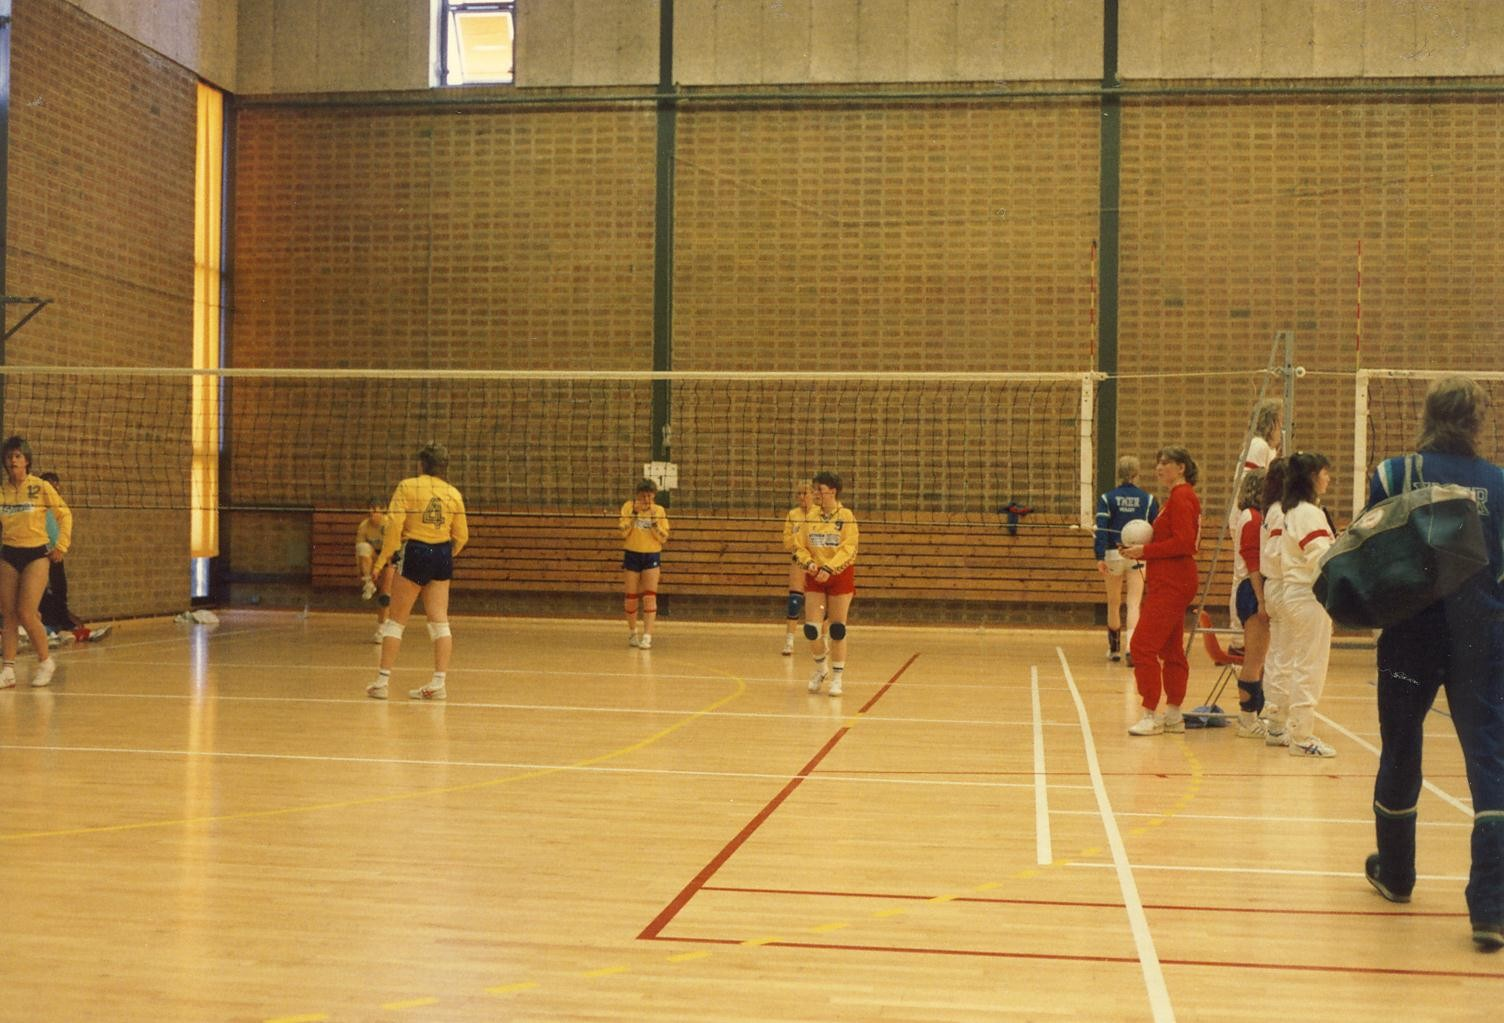 Scan12967 VOLLEY I SVERIGE 07-05-88